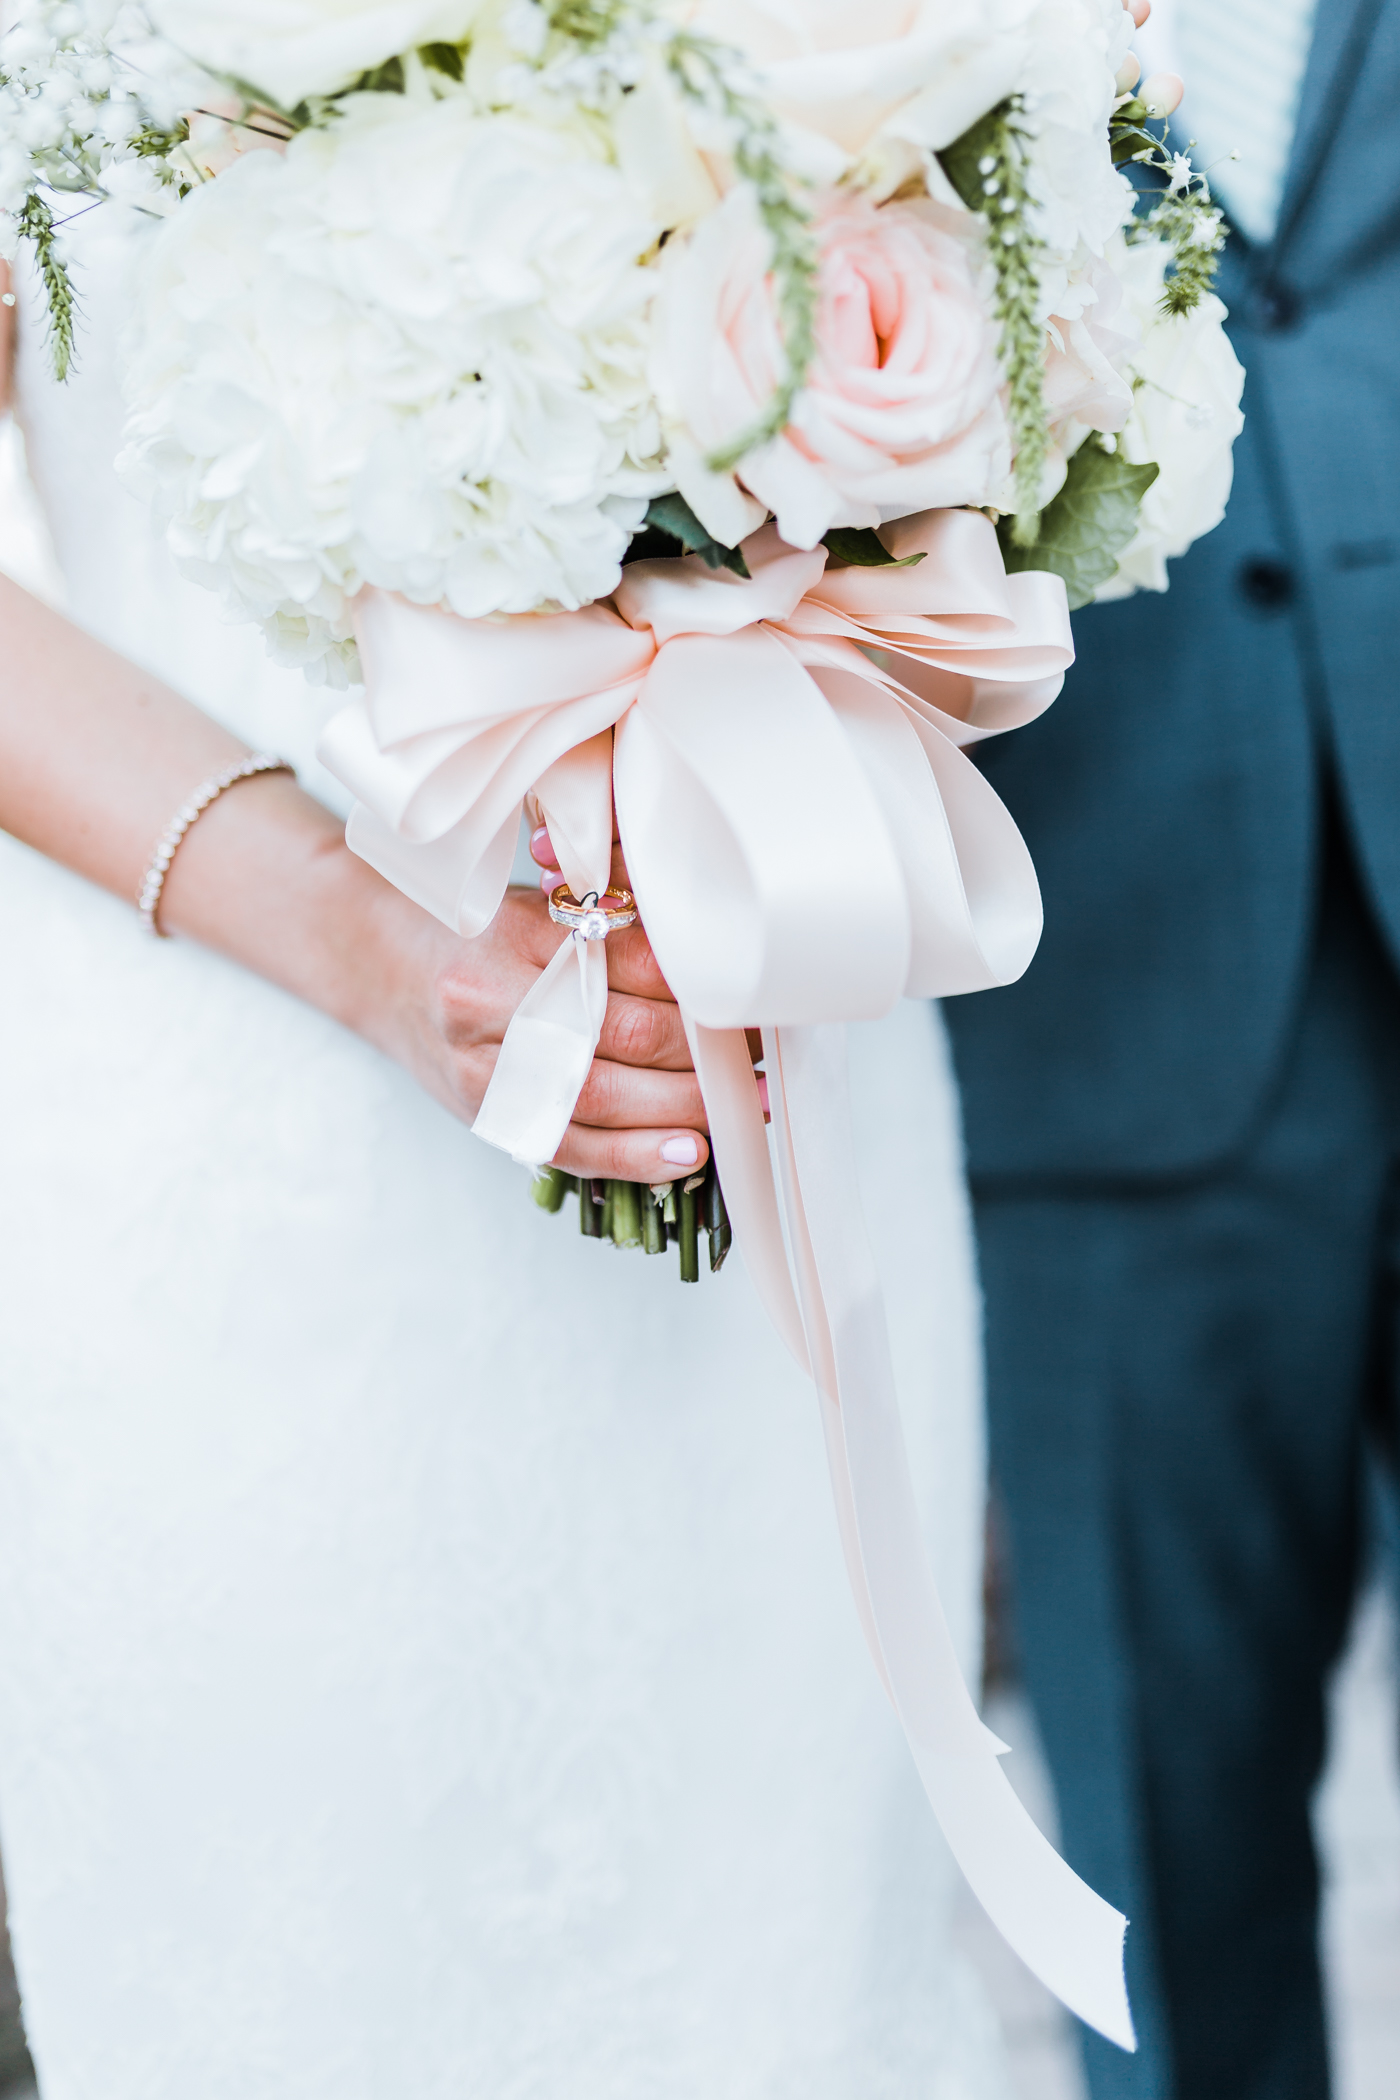 bridal bouquet details - white and peach bouquet - best PA wedding venues